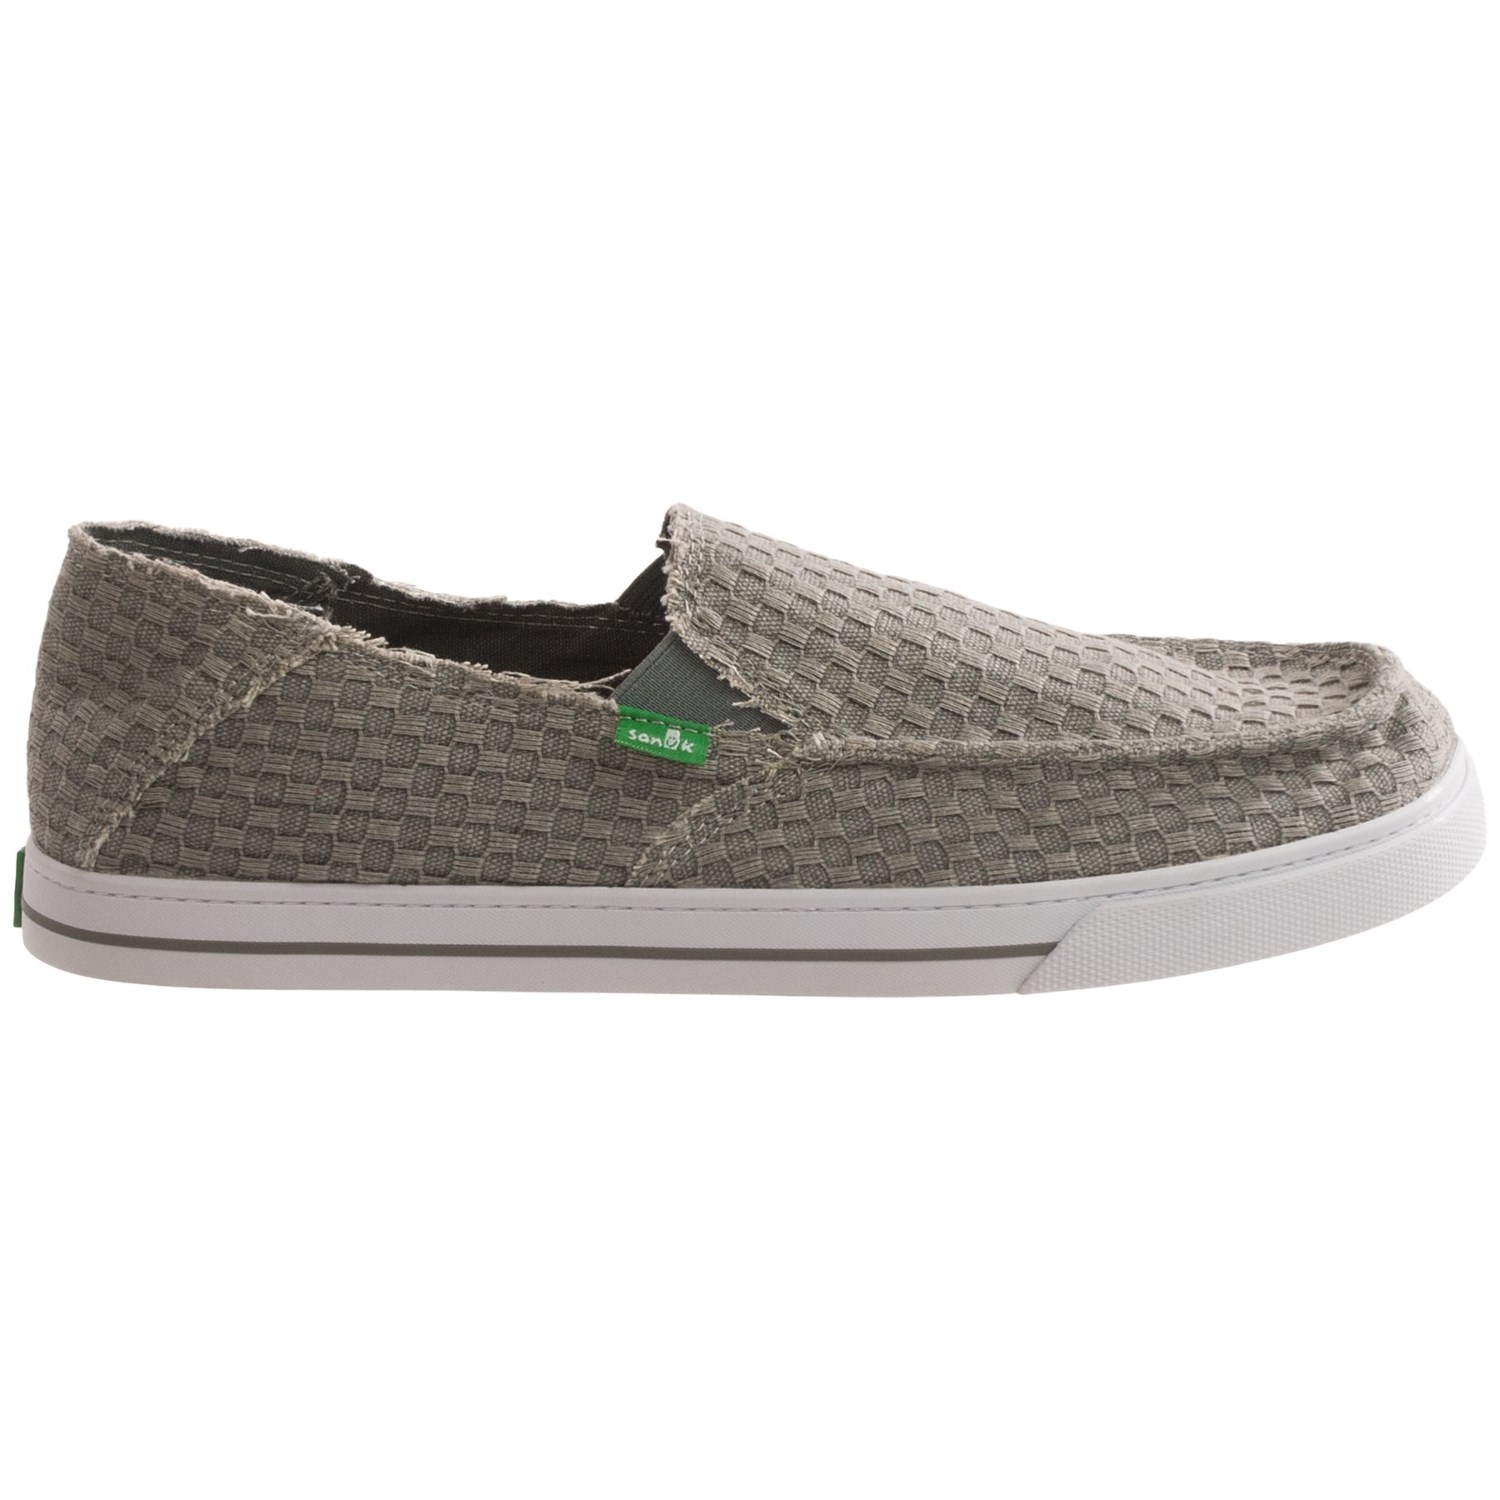 Casual slip-on has double side stretch for easy on/off. Cushioned insole and lightweight fl exible sole. Manmade. Imported. Men's whole sizes only; half sizes order next larger size; M, W, XW widths.